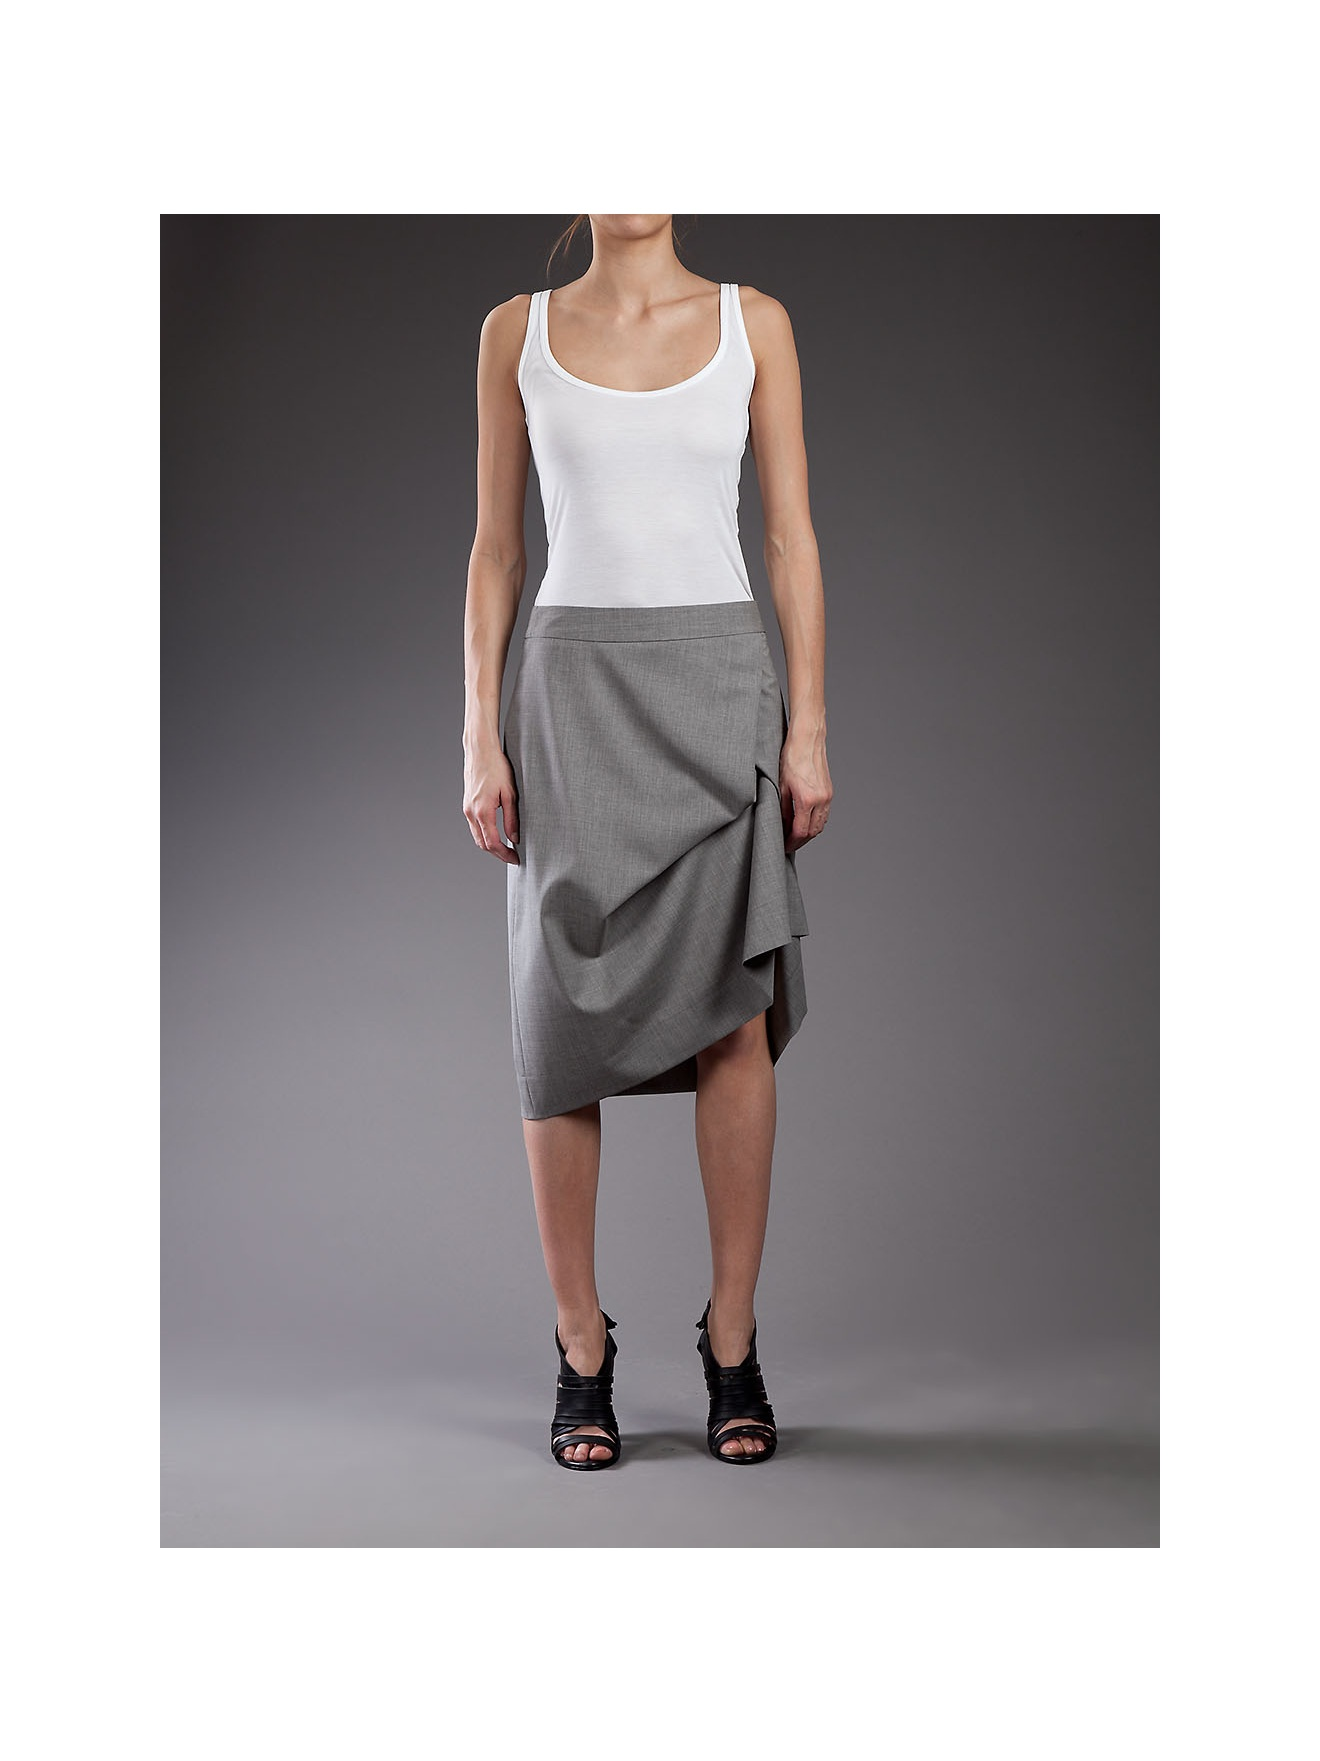 5d341f6a16 Vivienne Westwood Red Label Draped Wool-blend Pencil Skirt in Gray ...